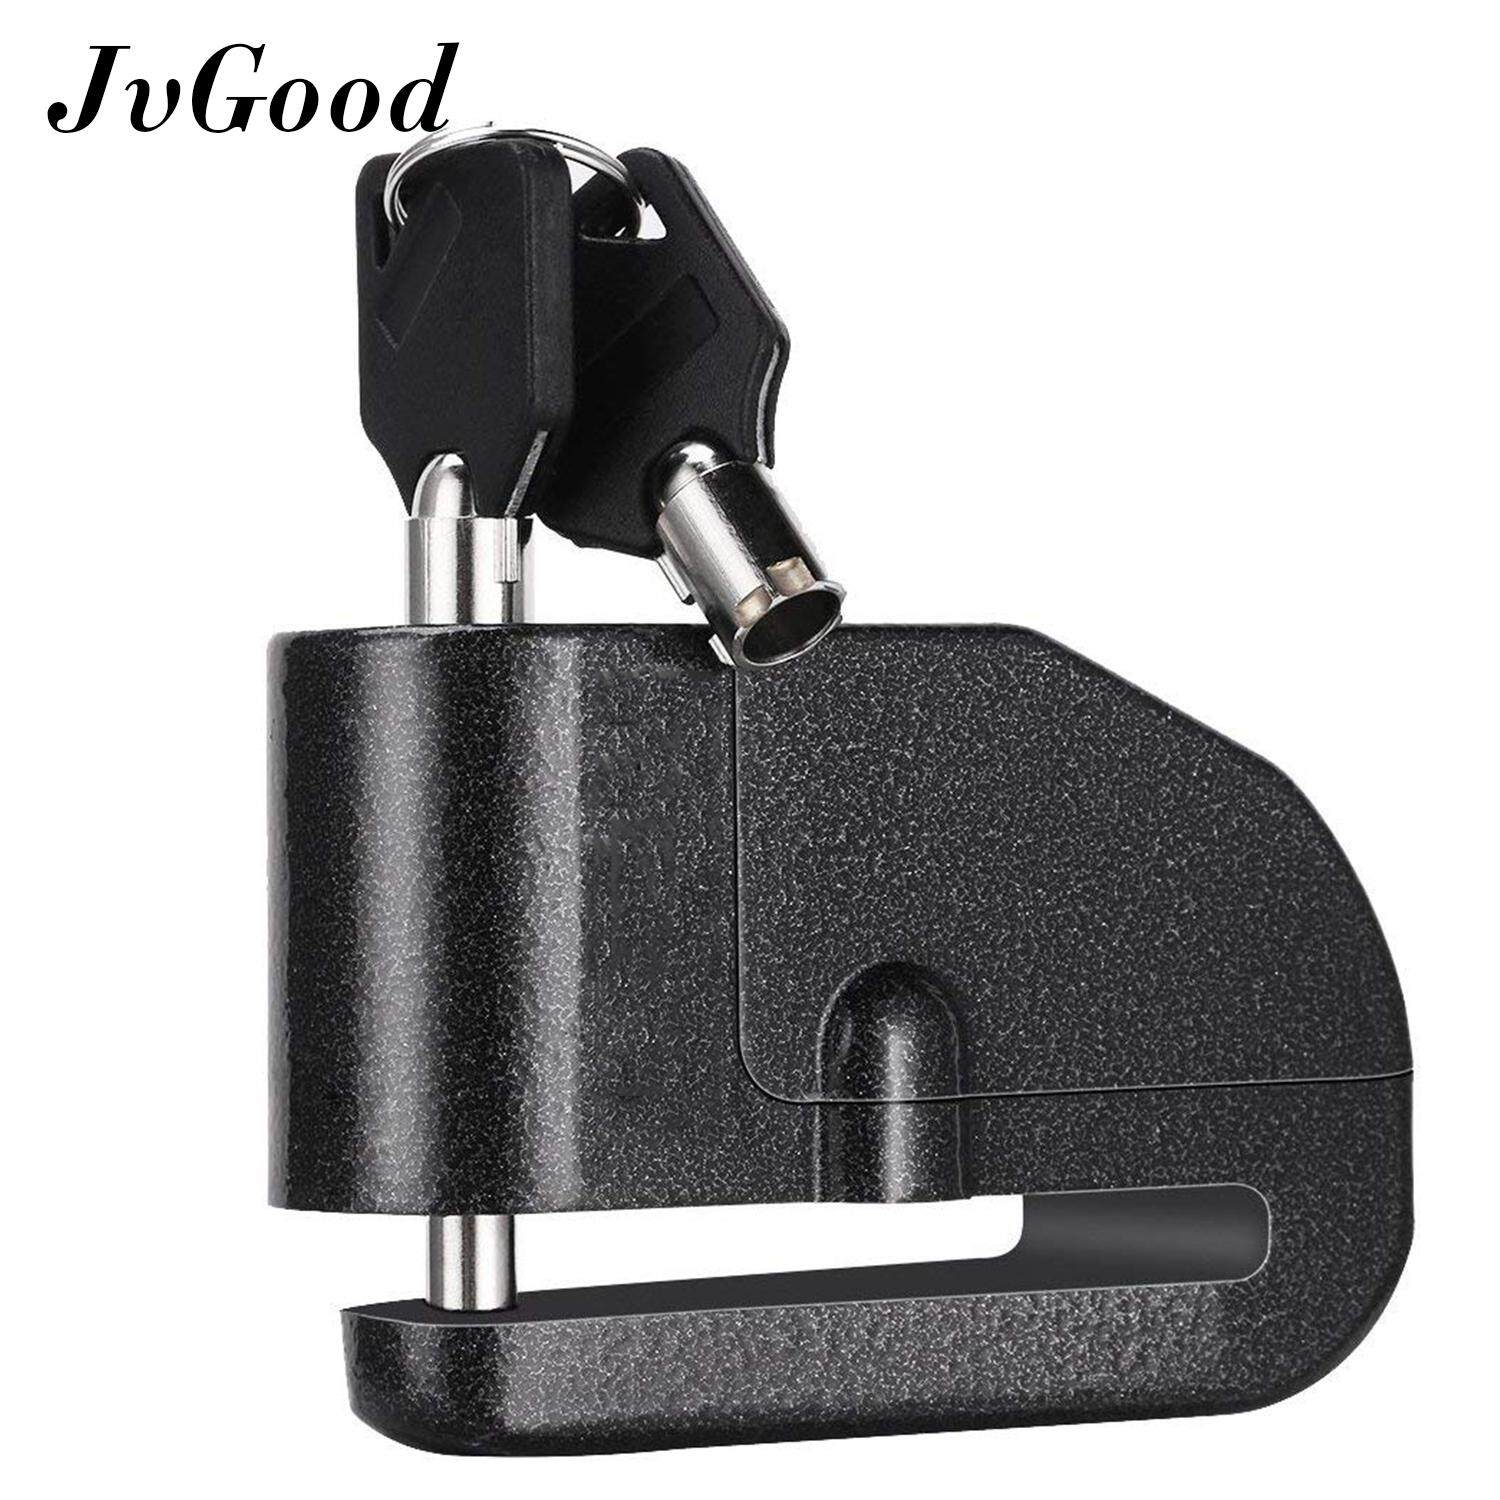 Jvgood Bike Alarm Lock Motorcycle Bike Anti-Theft Wheel Disc Brake Alarm Lock Padlock Waterproof Loud 110db Alarm Sound For Motorcycle Electrombile Bike Scooters By Jvgood.